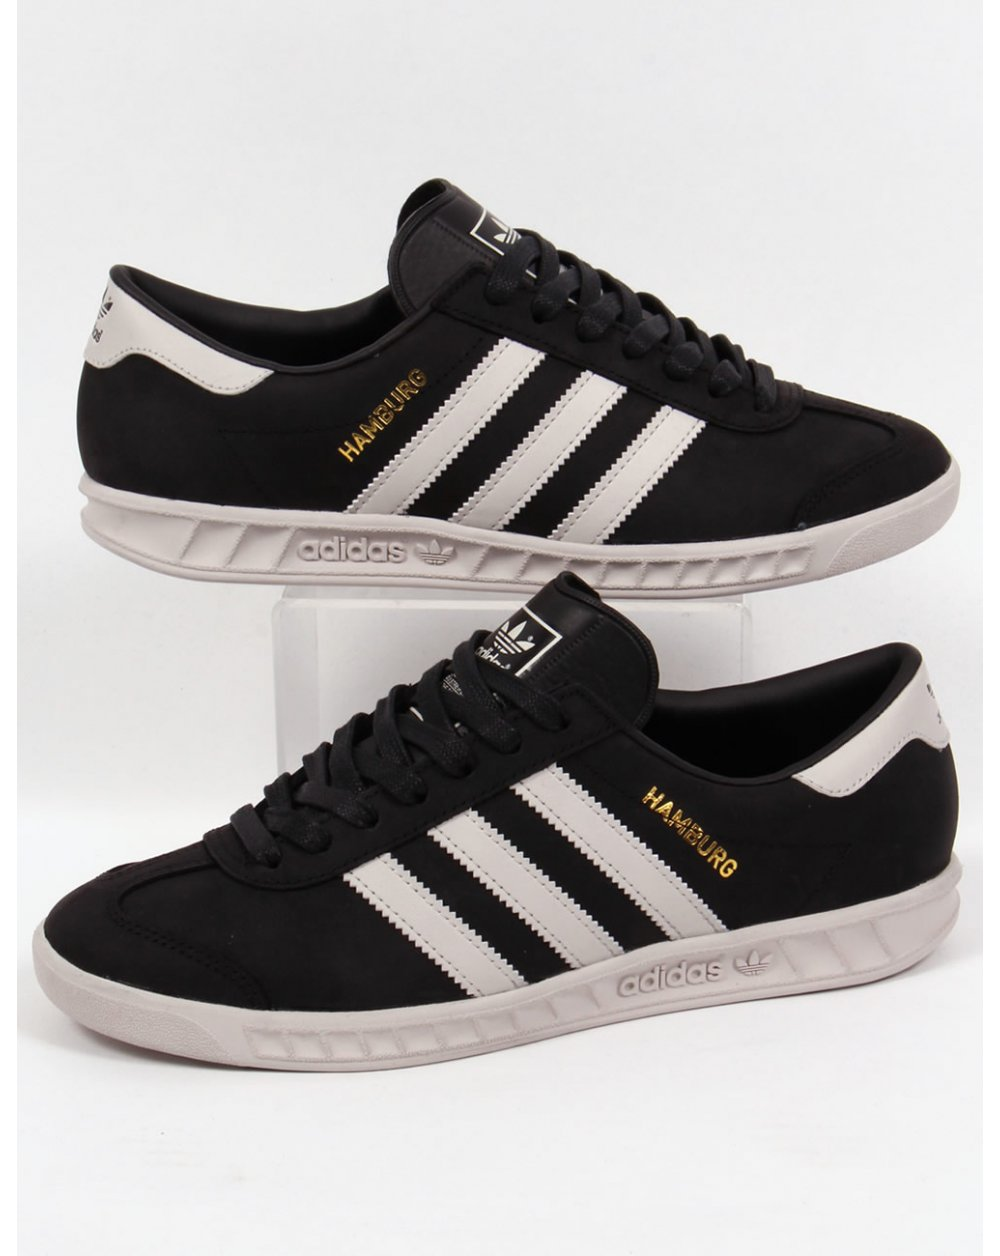 new style 92a32 28c70 adidas Trainers Adidas Hamburg Trainers Black white